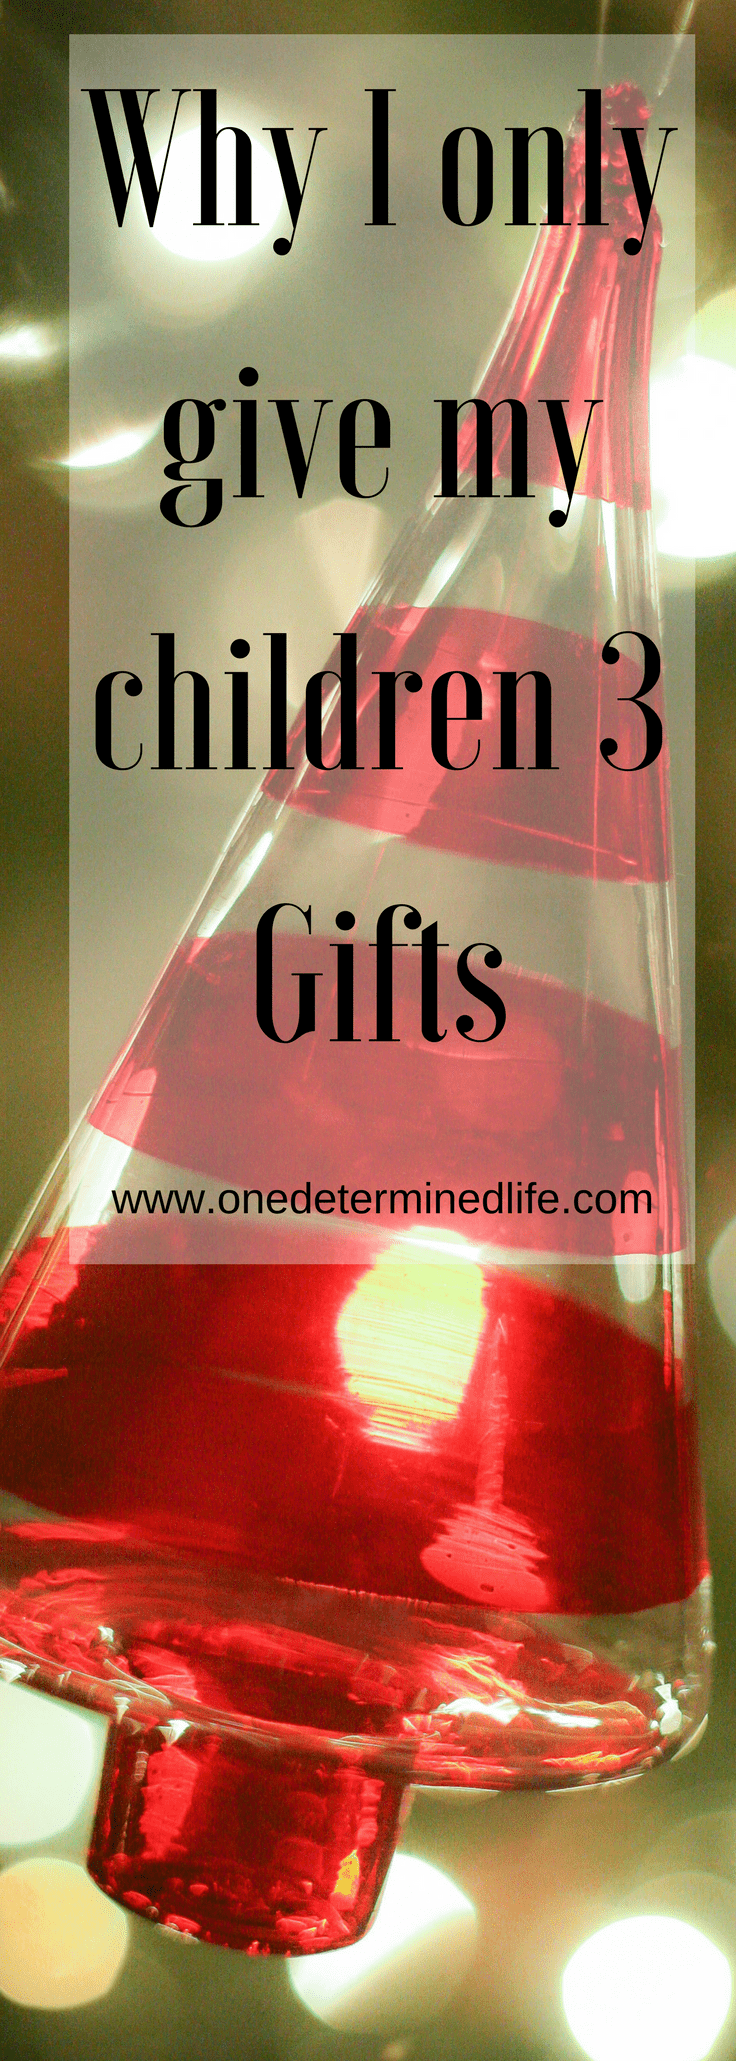 Why I only give my children 3 gifts